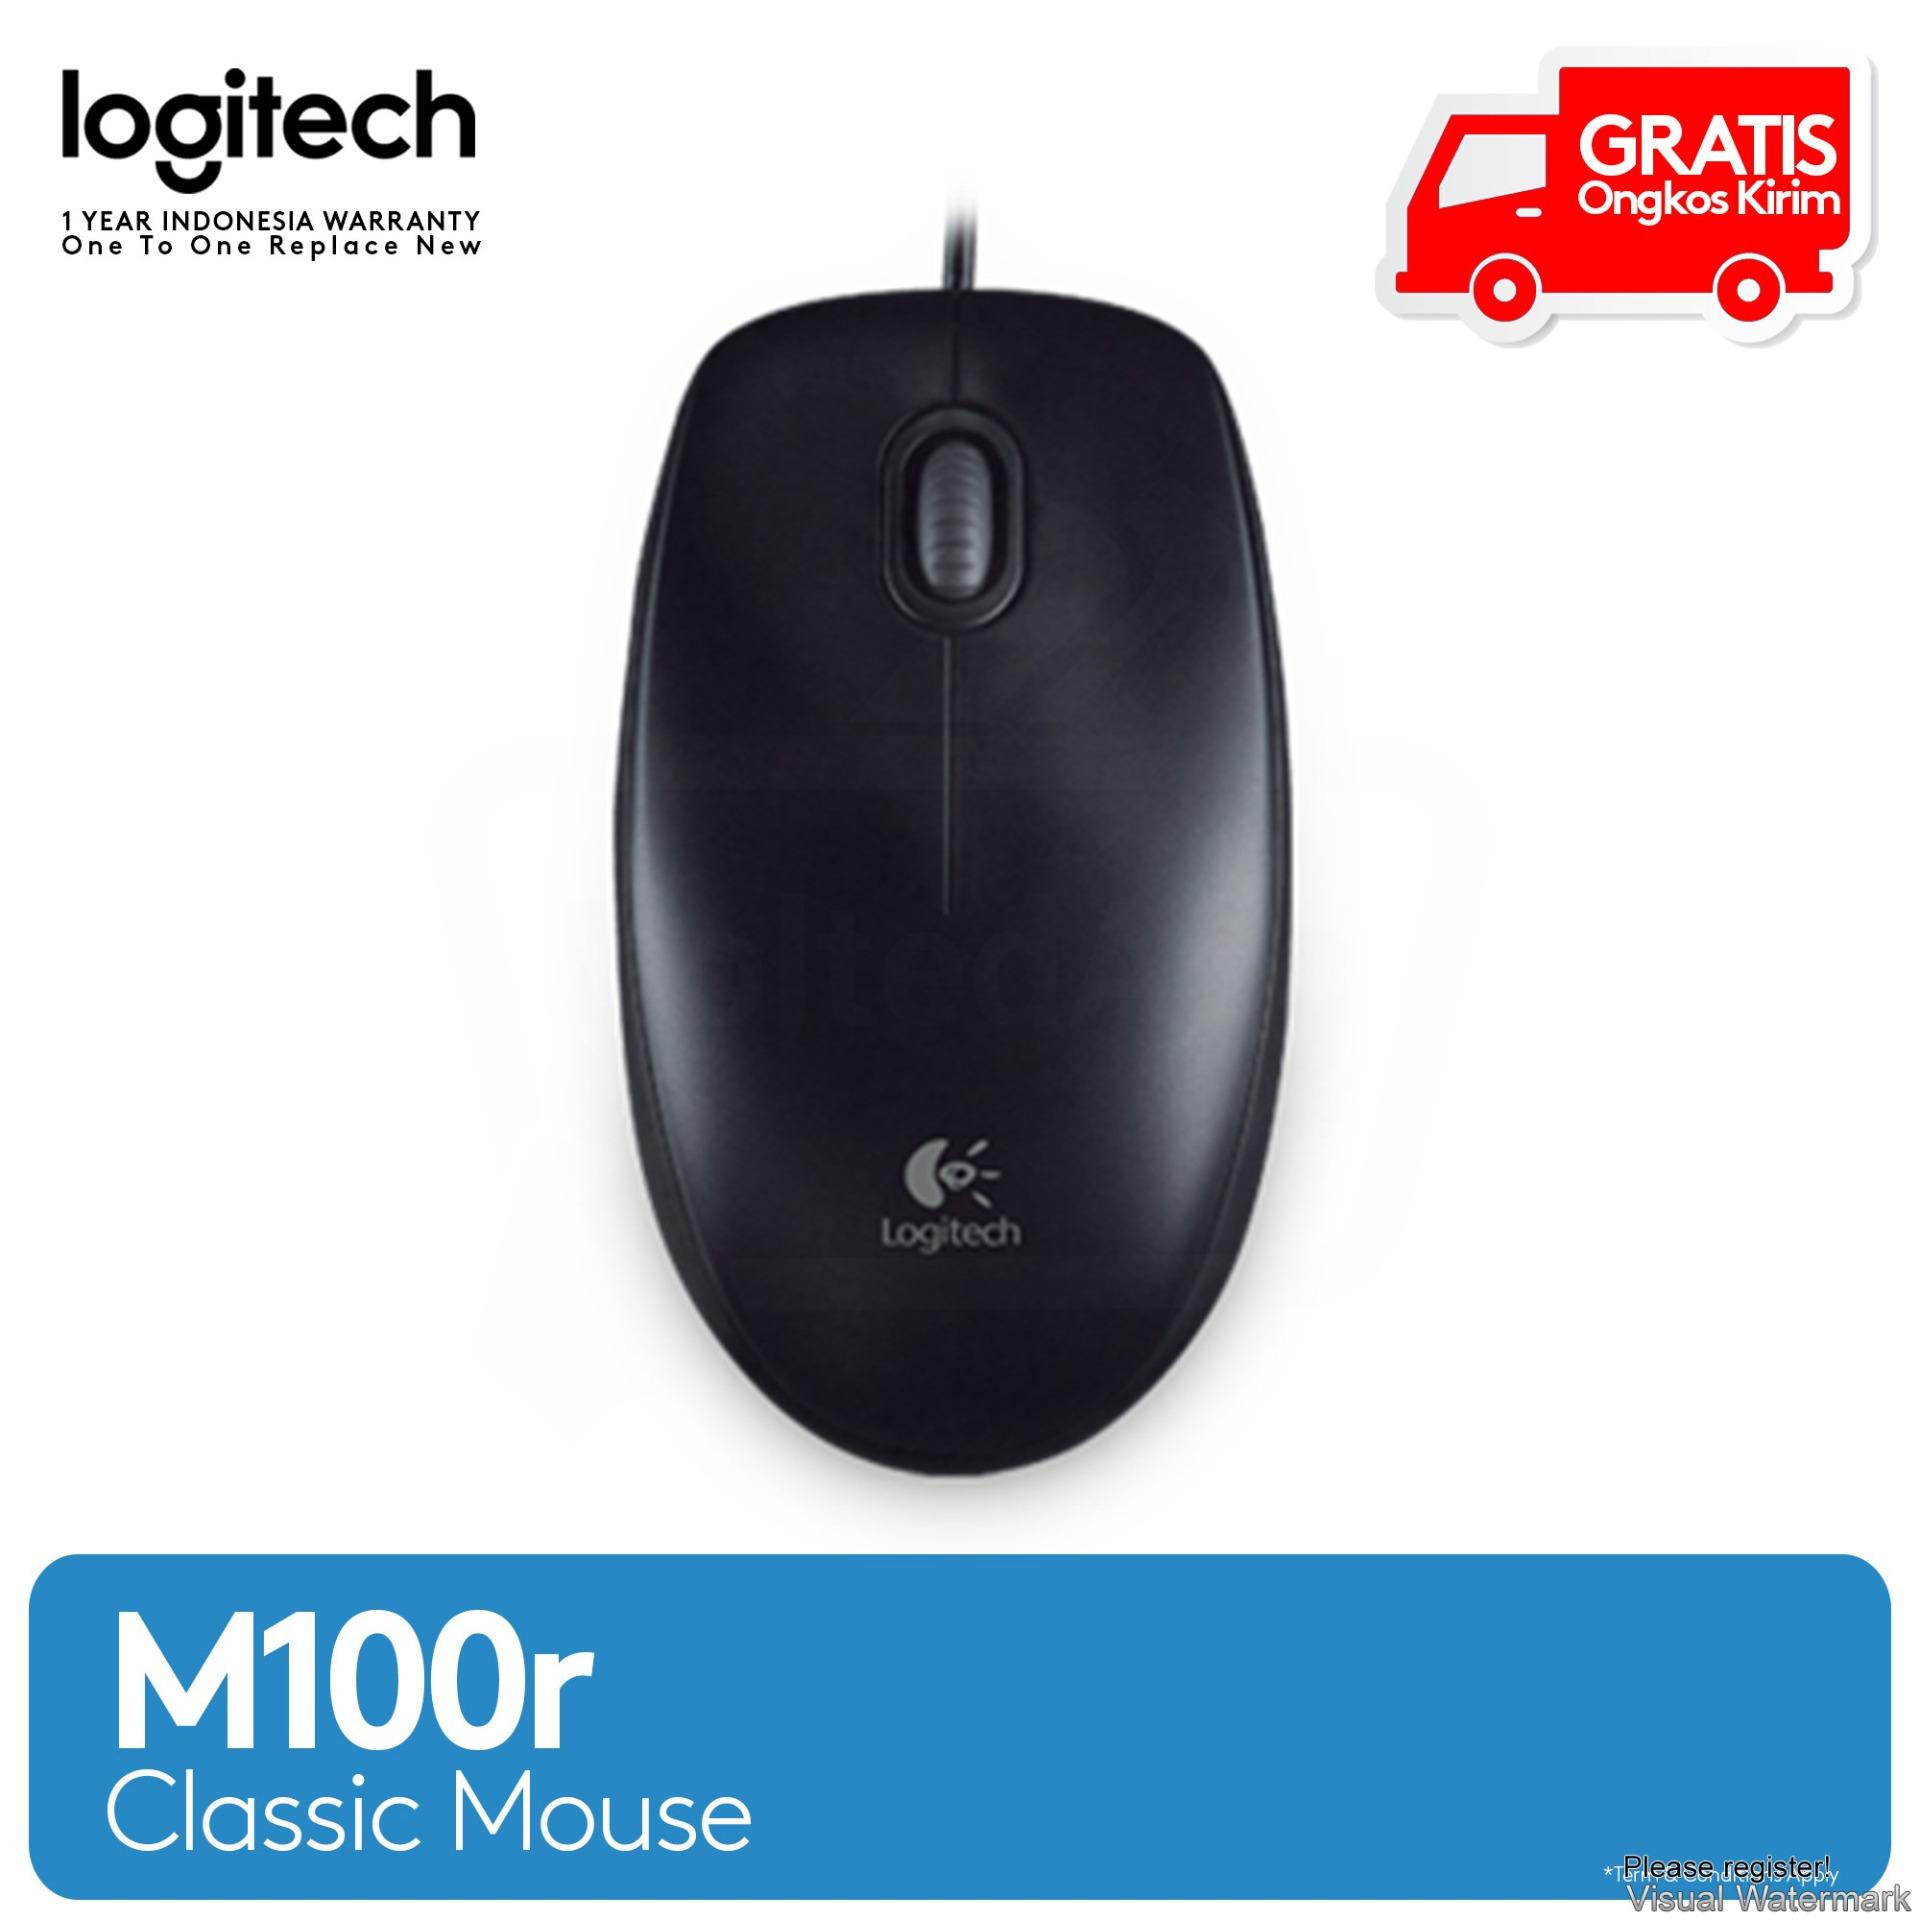 Fantech Mouse Wireless Gaming W4 Merah Speaker Loyfun 701 Hitam W556 Mousepad Mp25 Logitech M100r Wired Optical Free